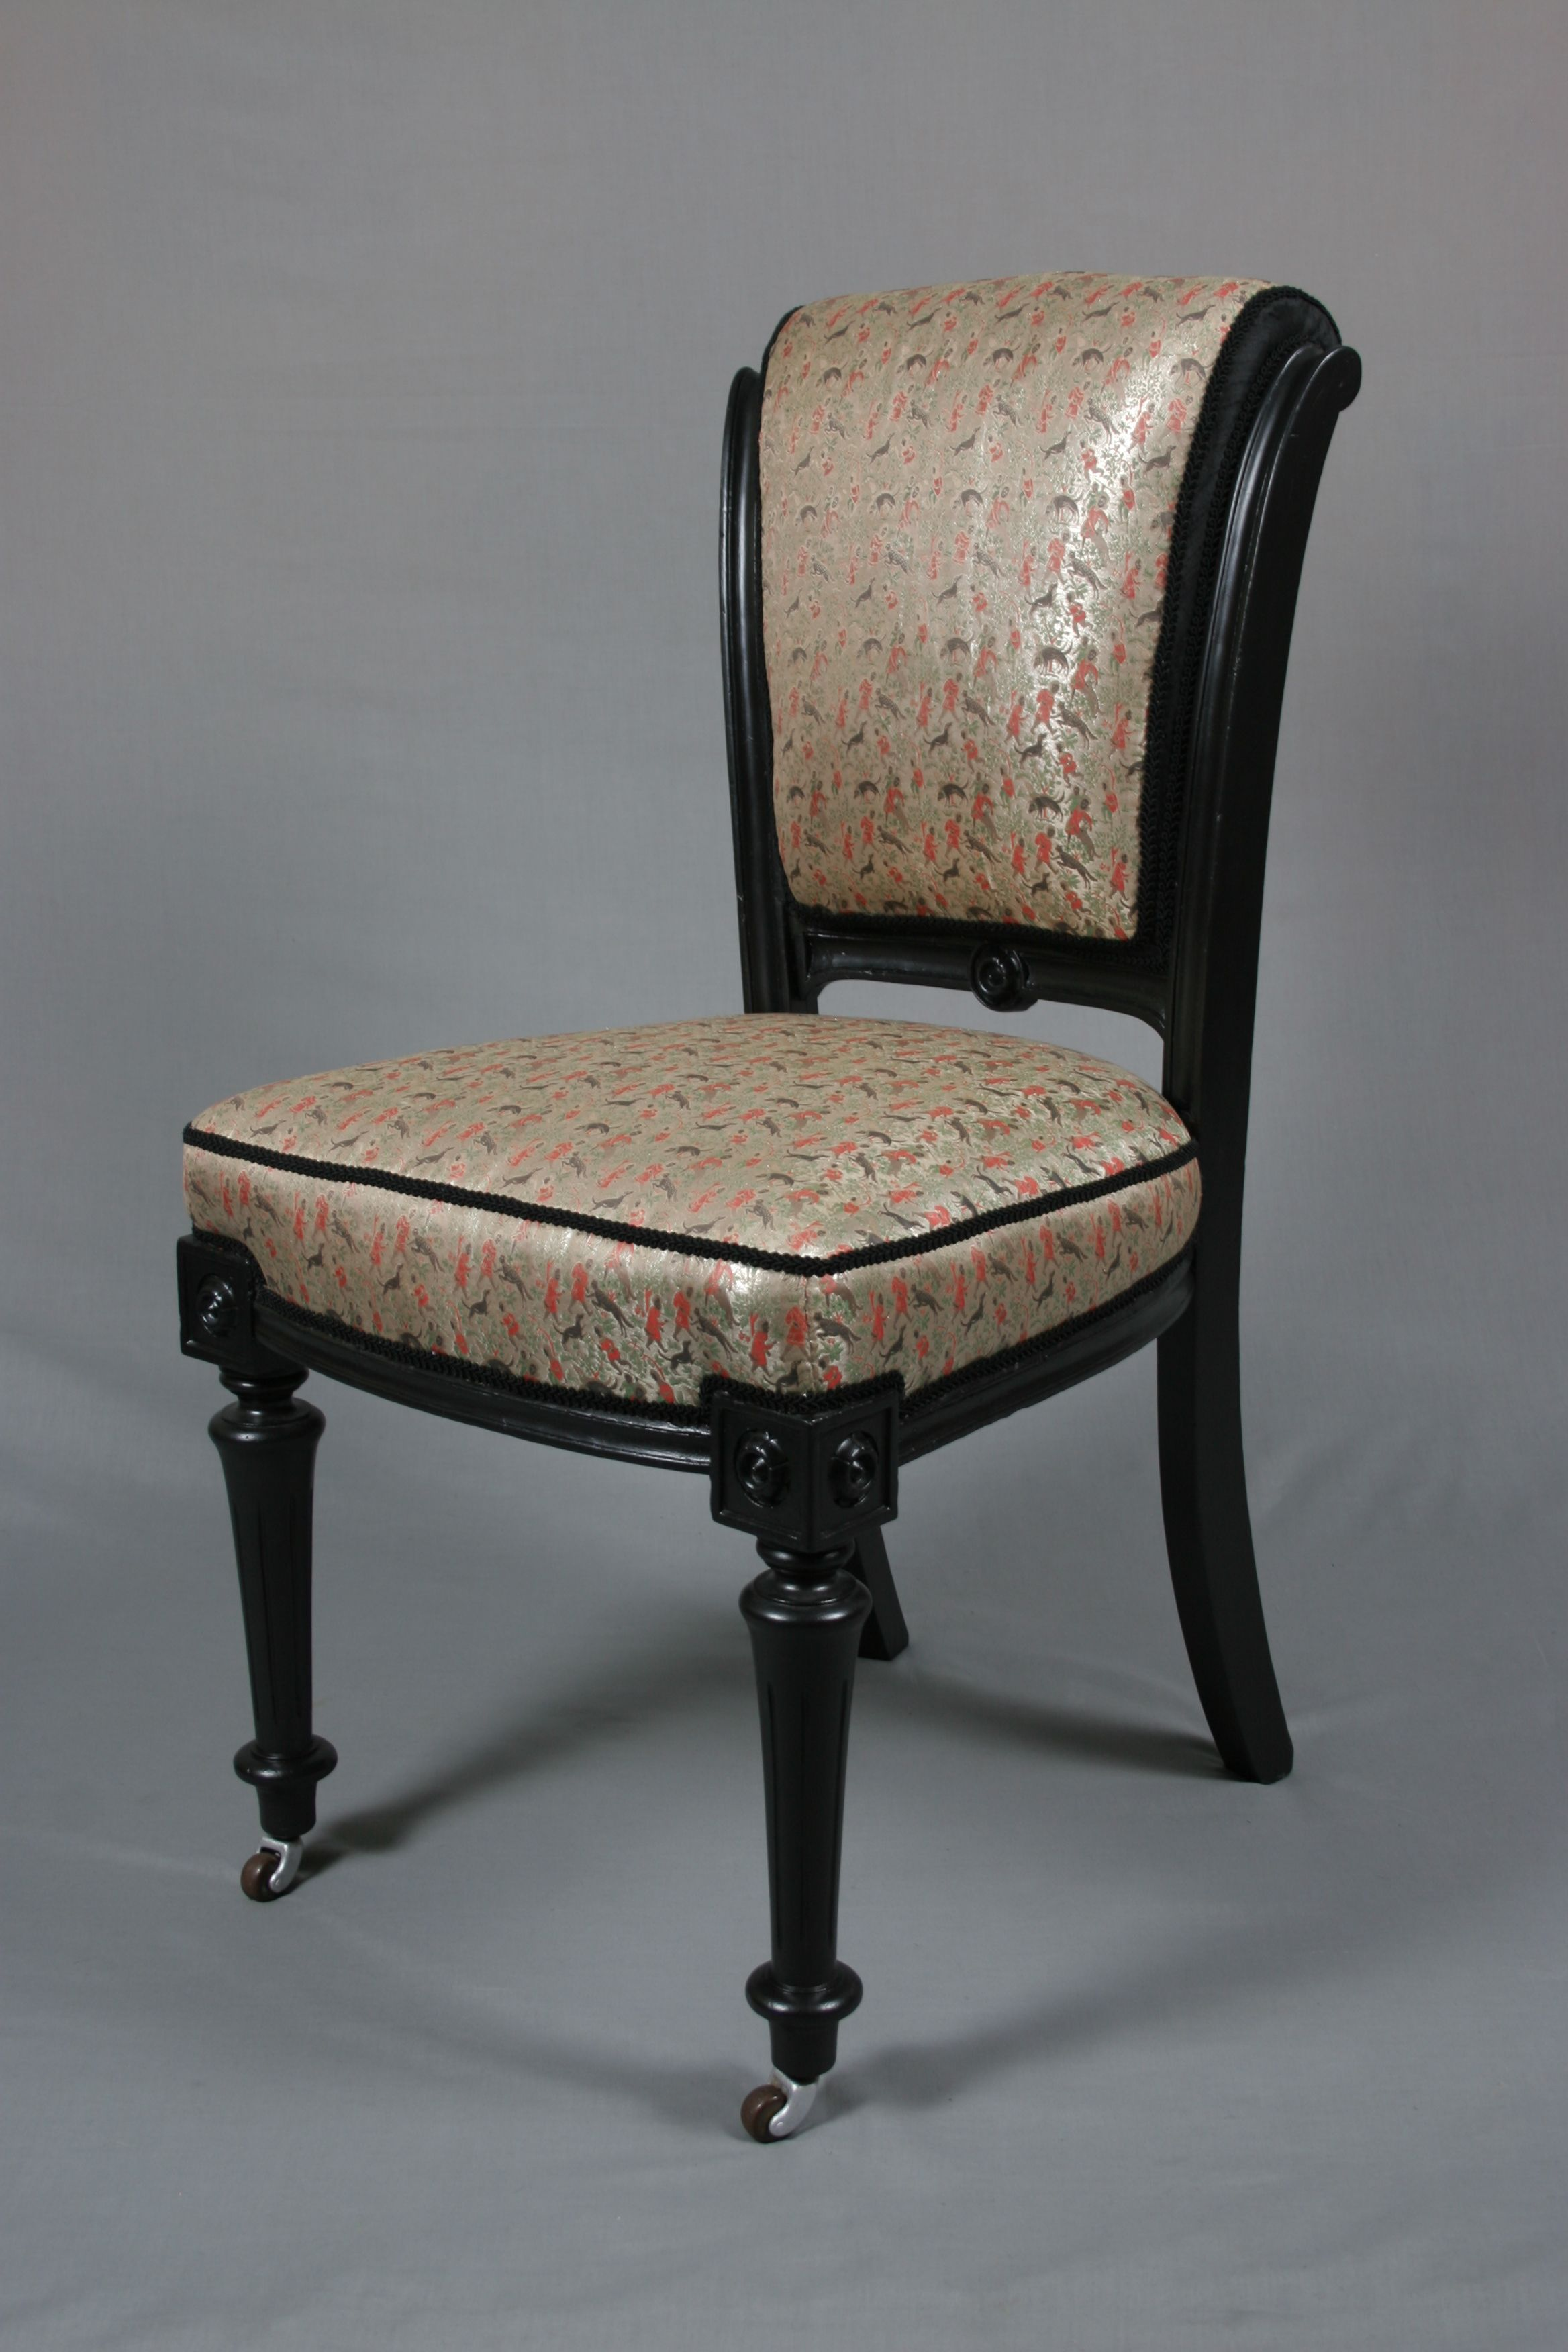 Elegant Victorian Walnut Occasional Chair Restored And Traditionally Re Upholstered  With Remnants Of Genuine Early 20th